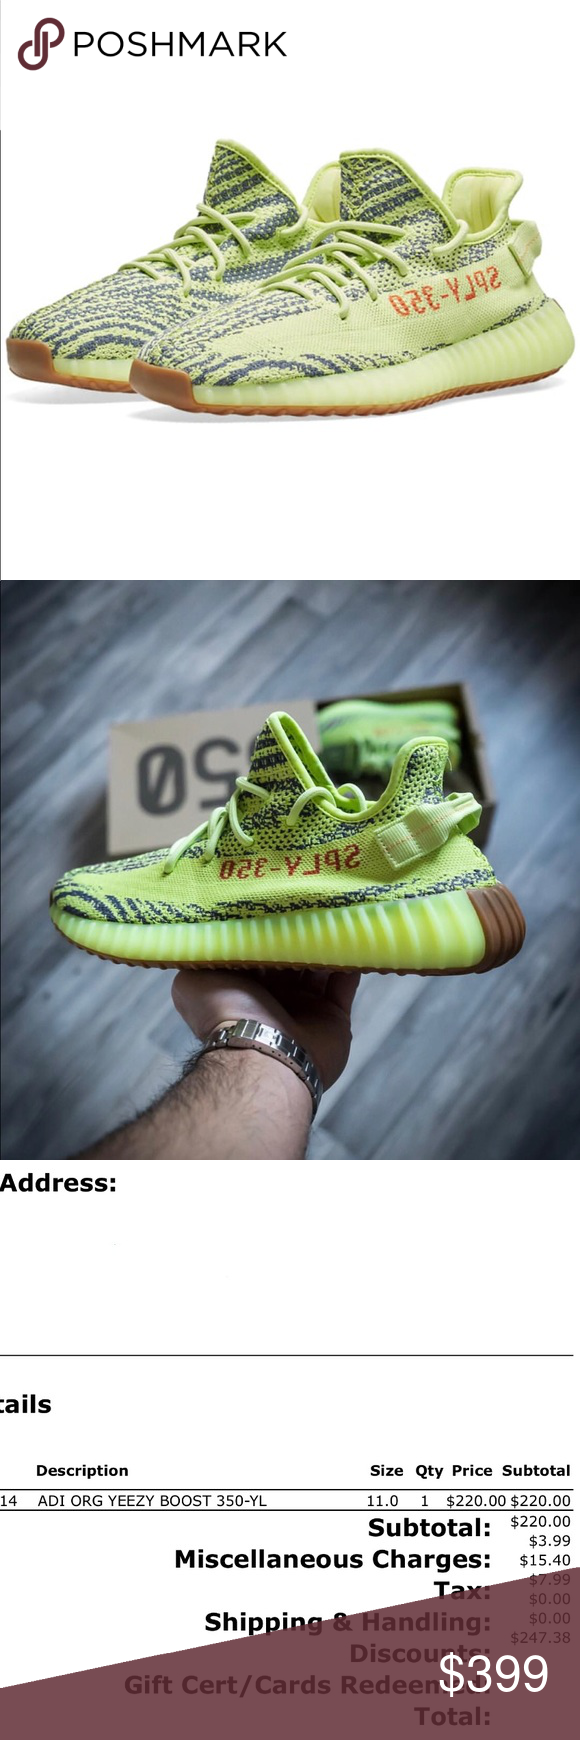 """87c17dd8d adidas YEEZY Boost 350 v2 """"Semi Frozen Yellow"""" Sold out in stores. Release"""